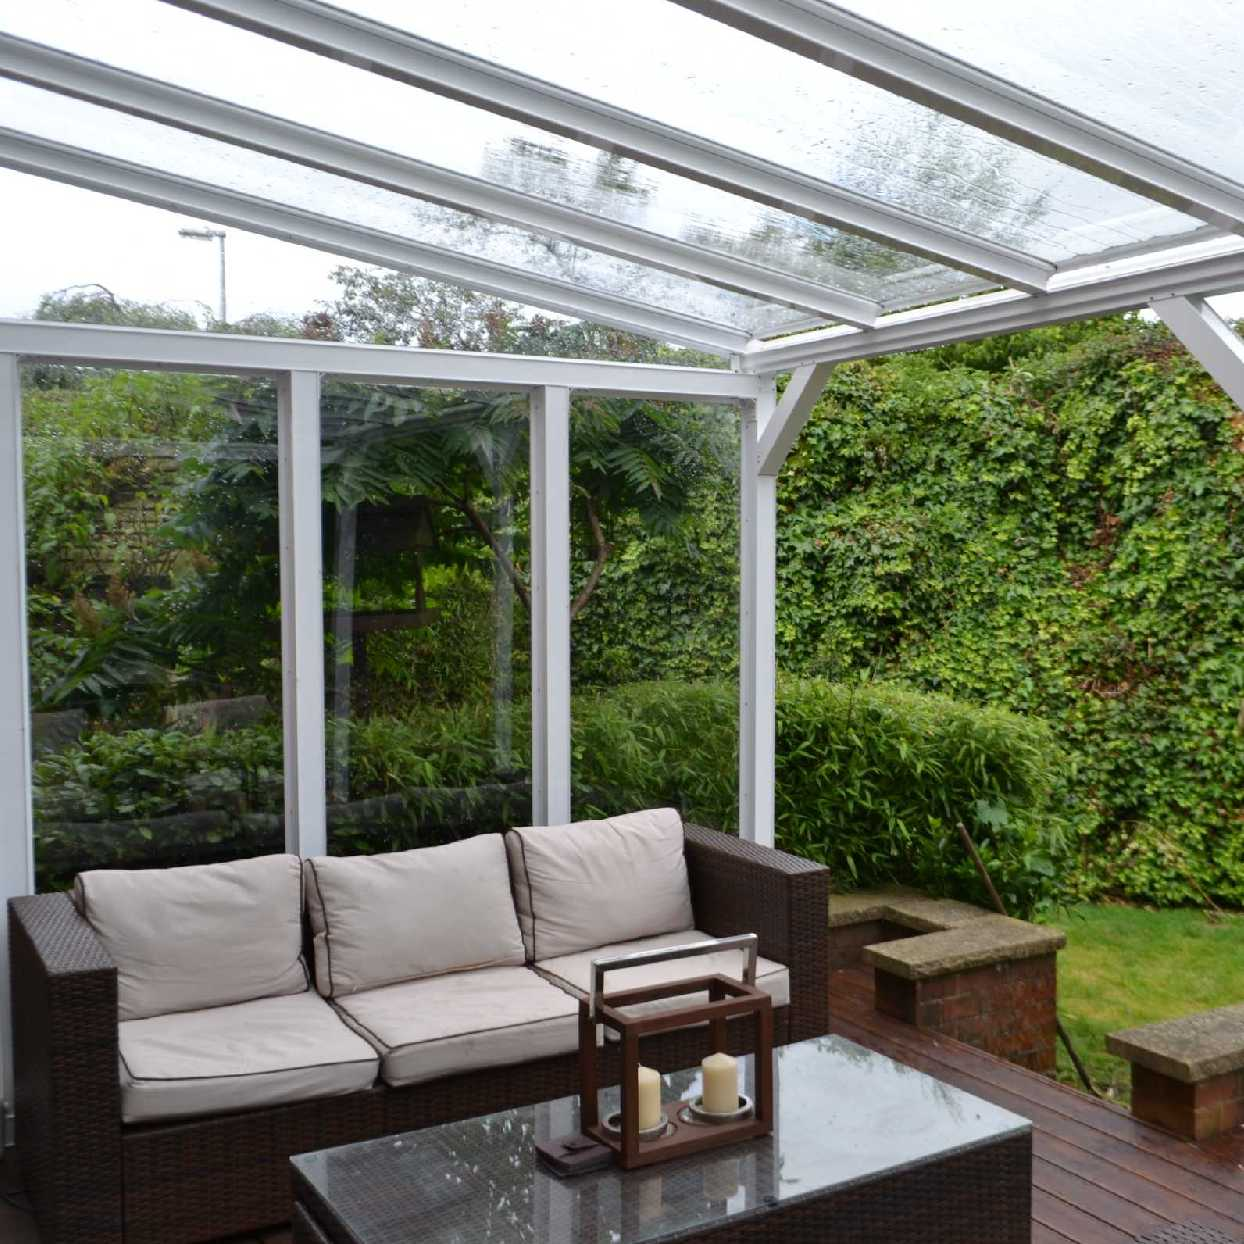 Great selection of Omega Smart White Lean-To Canopy with 16mm Polycarbonate Glazing - 3.1m (W) x 4.5m (P), (2) Supporting Posts